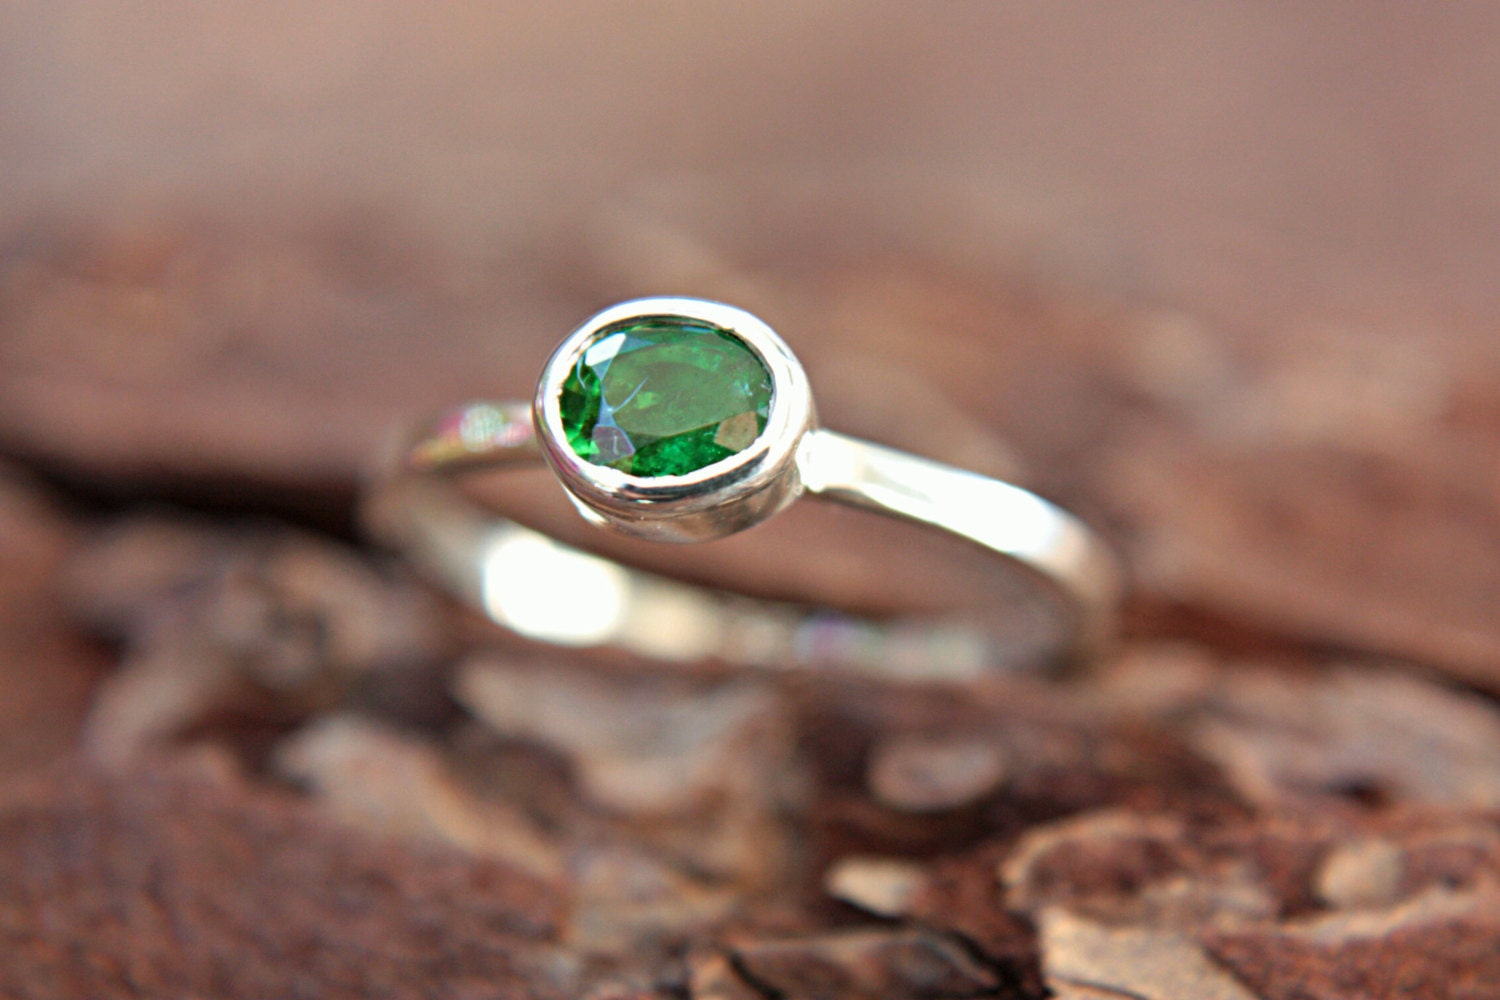 Green Tsavorite Garnet Ring Sterling Silver Natural Garnet Gemstone Engagement Ring Size 6,5 Silversmithed Metalsmithed - ManariDesign